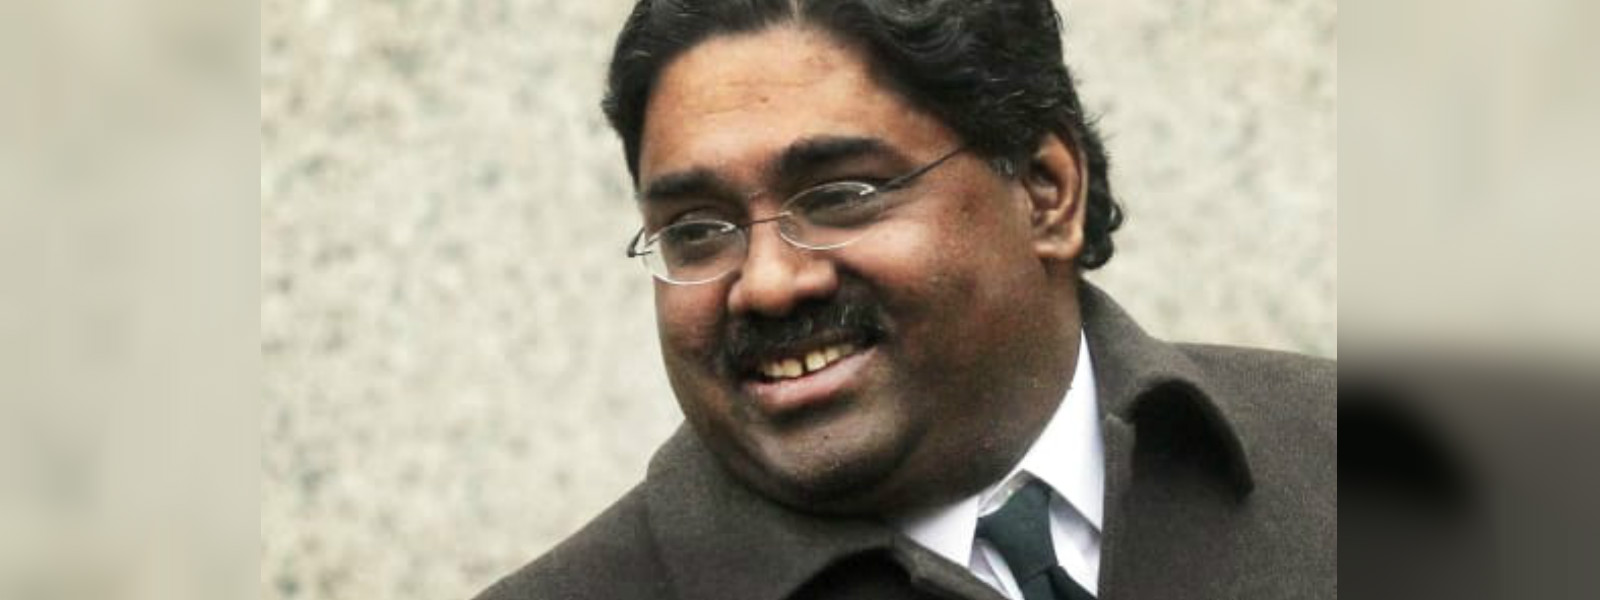 Raj Rajaratnam released from US Federal Prison 2 years early